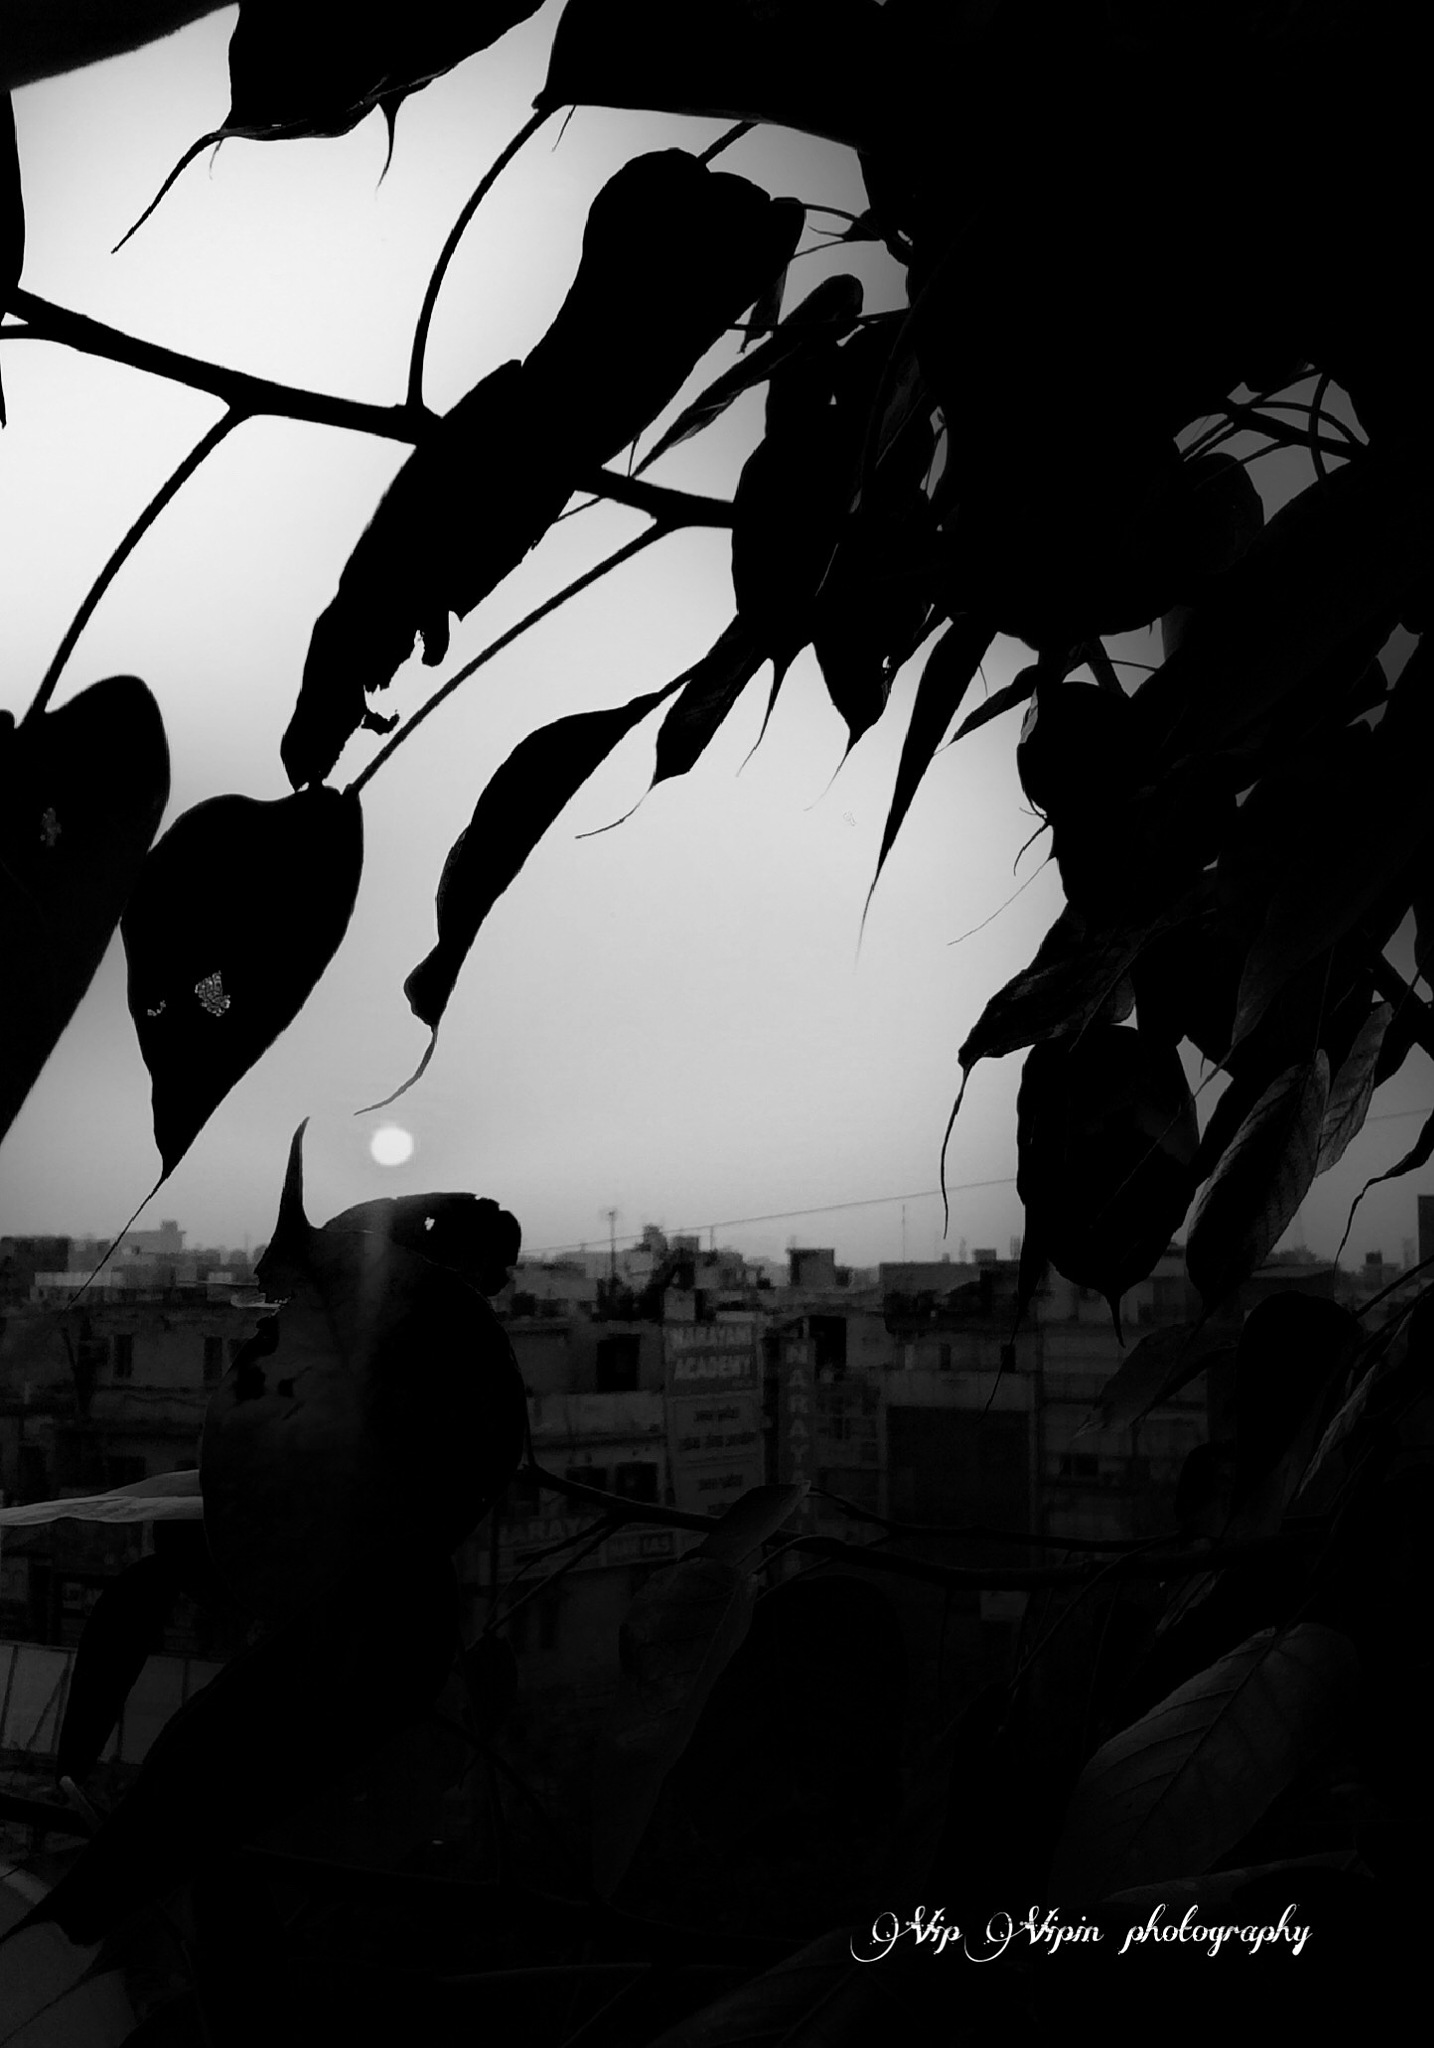 Untitled by vip vipin